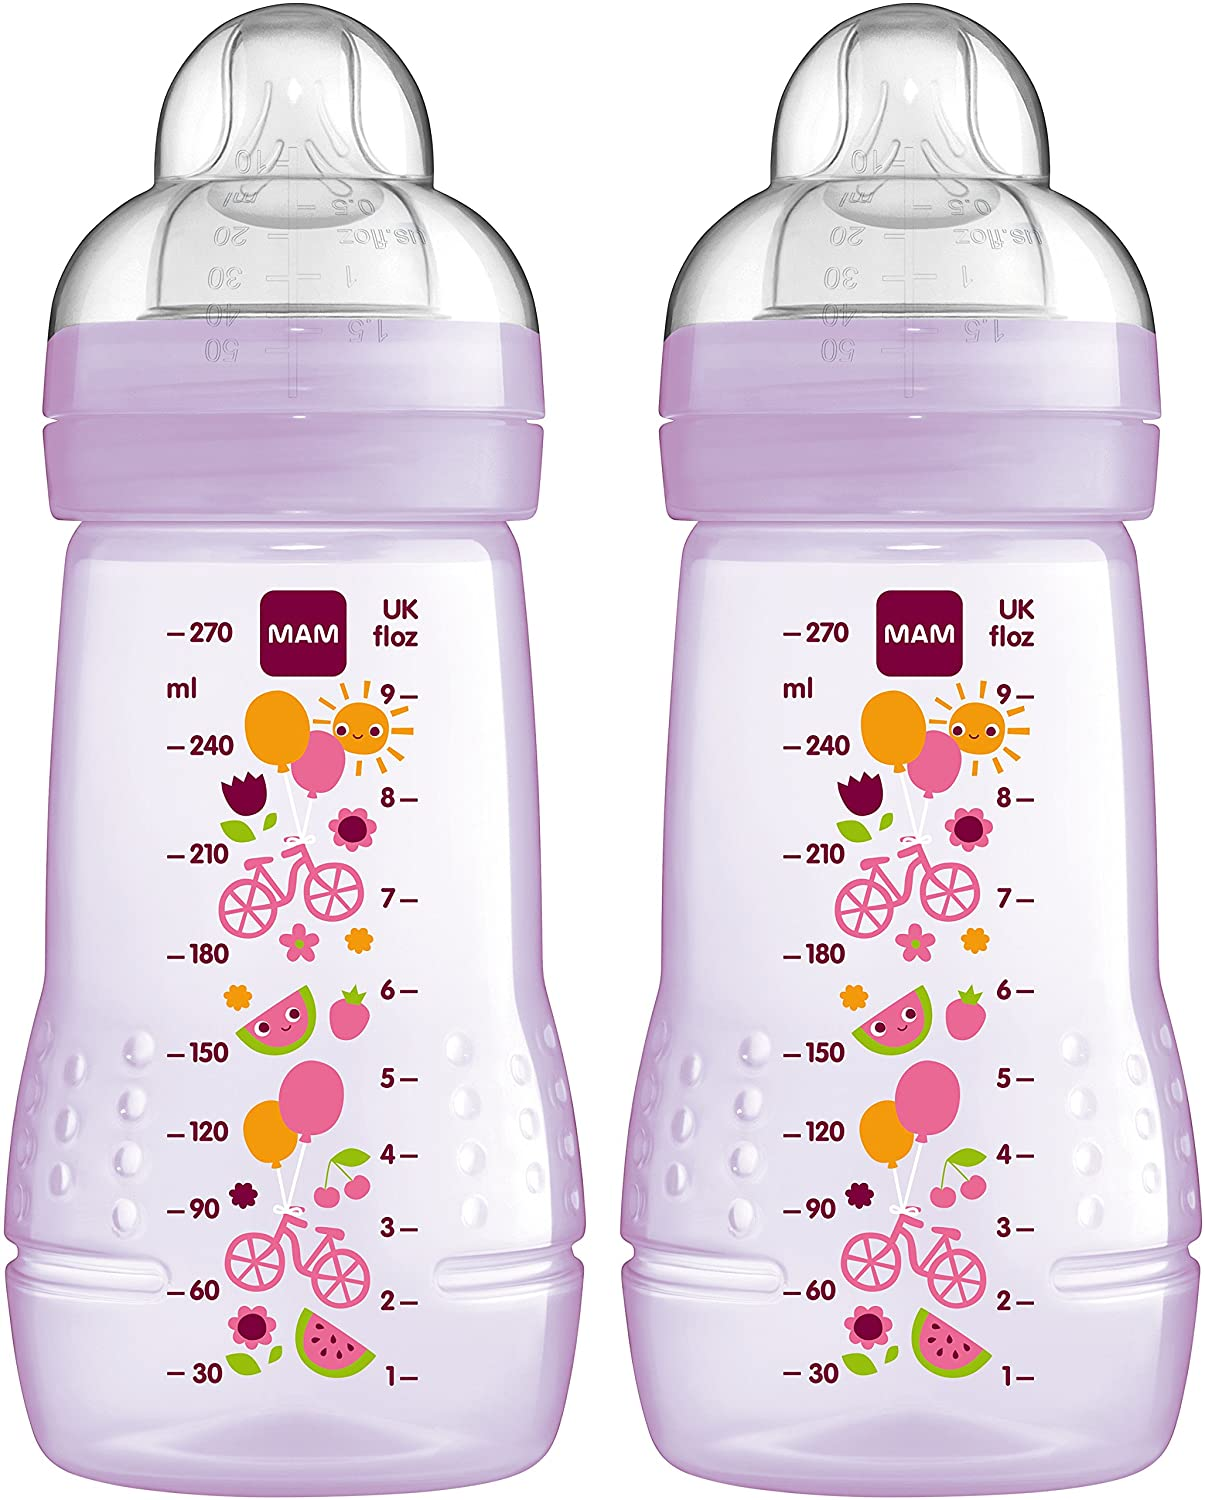 MAM Easy Active Baby Bottle, Medium Flow - 270ml (Pack of 2), Pink Mam UK Imports FB0802G Accessory